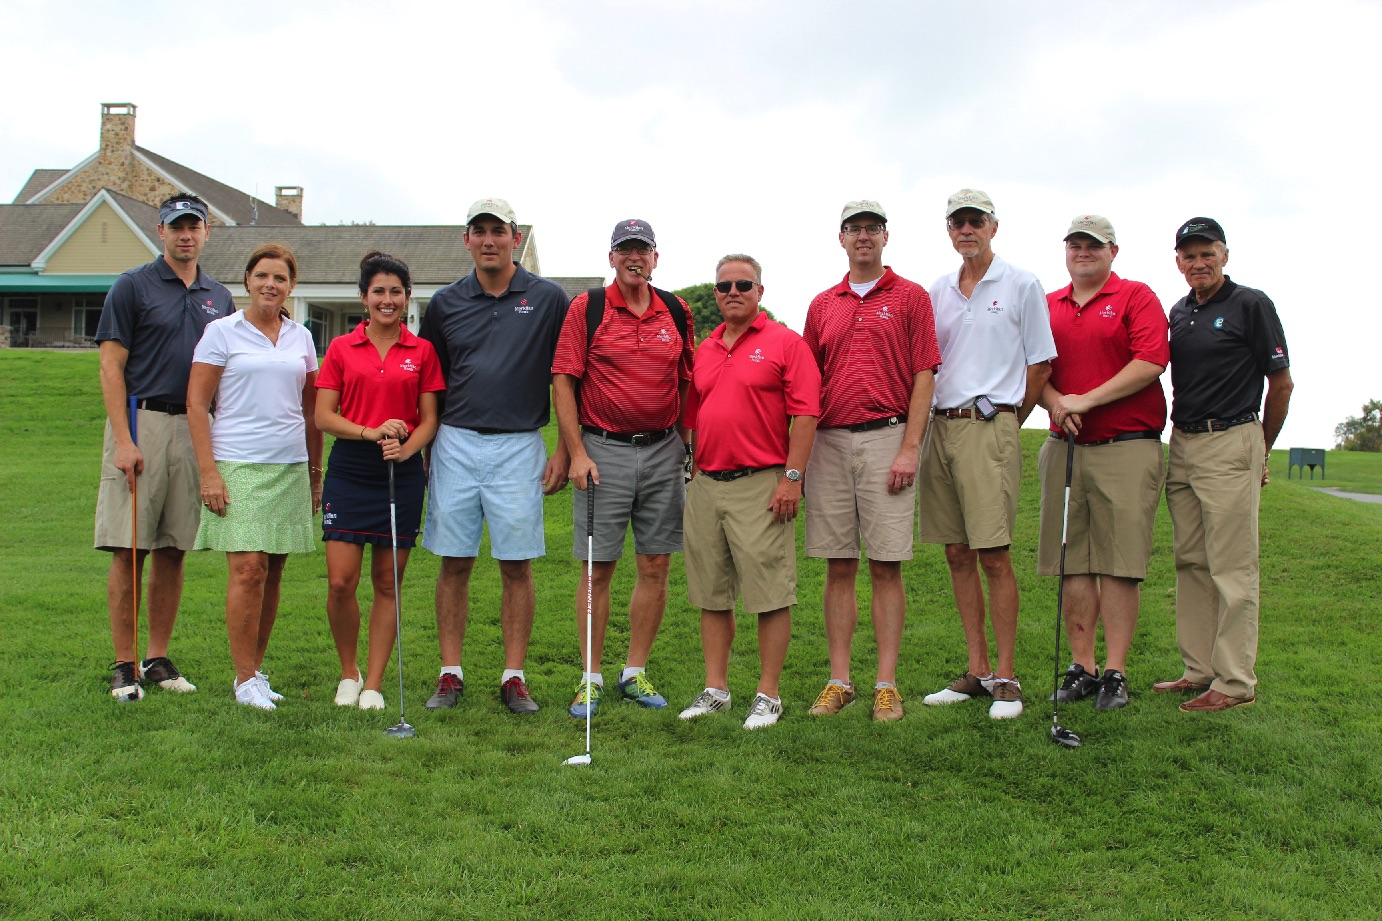 CCEDC Hosts 14th Annual Golf Classic for Region's Top Business Leaders